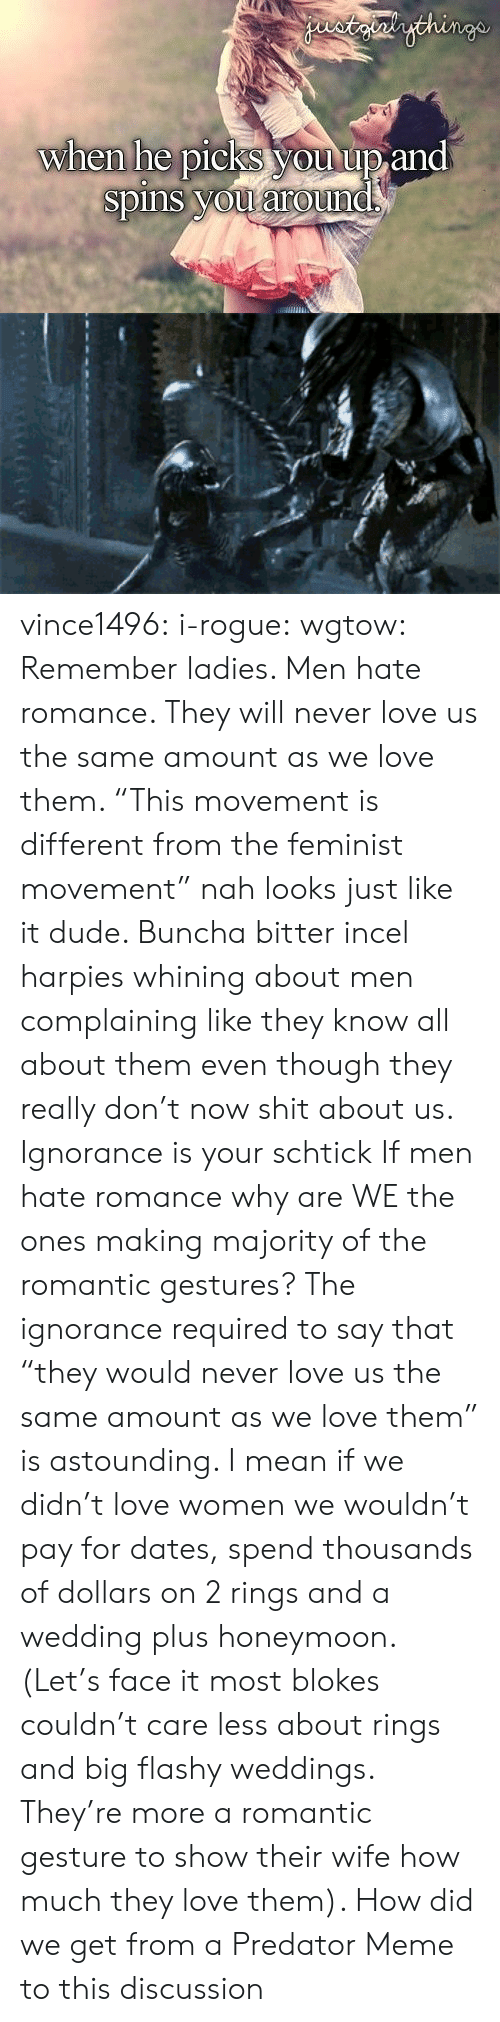 """Dude, Honeymoon, and Love: staialythinge  when he picks you up and  spins you around vince1496:  i-rogue:  wgtow:  Remember ladies. Men hate romance. They will never love us the same amount as we love them.   """"This movement is different from the feminist movement"""" nah looks just like it dude. Buncha bitter incel harpies whining about men complaining like they know all about them even though they really don't now shit about us. Ignorance is your schtick  If men hate romance why are WE the ones making majority of the romantic gestures? The ignorance required to say that """"they would never love us the same amount as we love them"""" is astounding. I mean if we didn't love women we wouldn't pay for dates, spend thousands of dollars on 2 rings and a wedding plus honeymoon. (Let's face it most blokes couldn't care less about rings and big flashy weddings. They're more a romantic gesture to show their wife how much they love them).   How did we get from a Predator Meme to this discussion"""